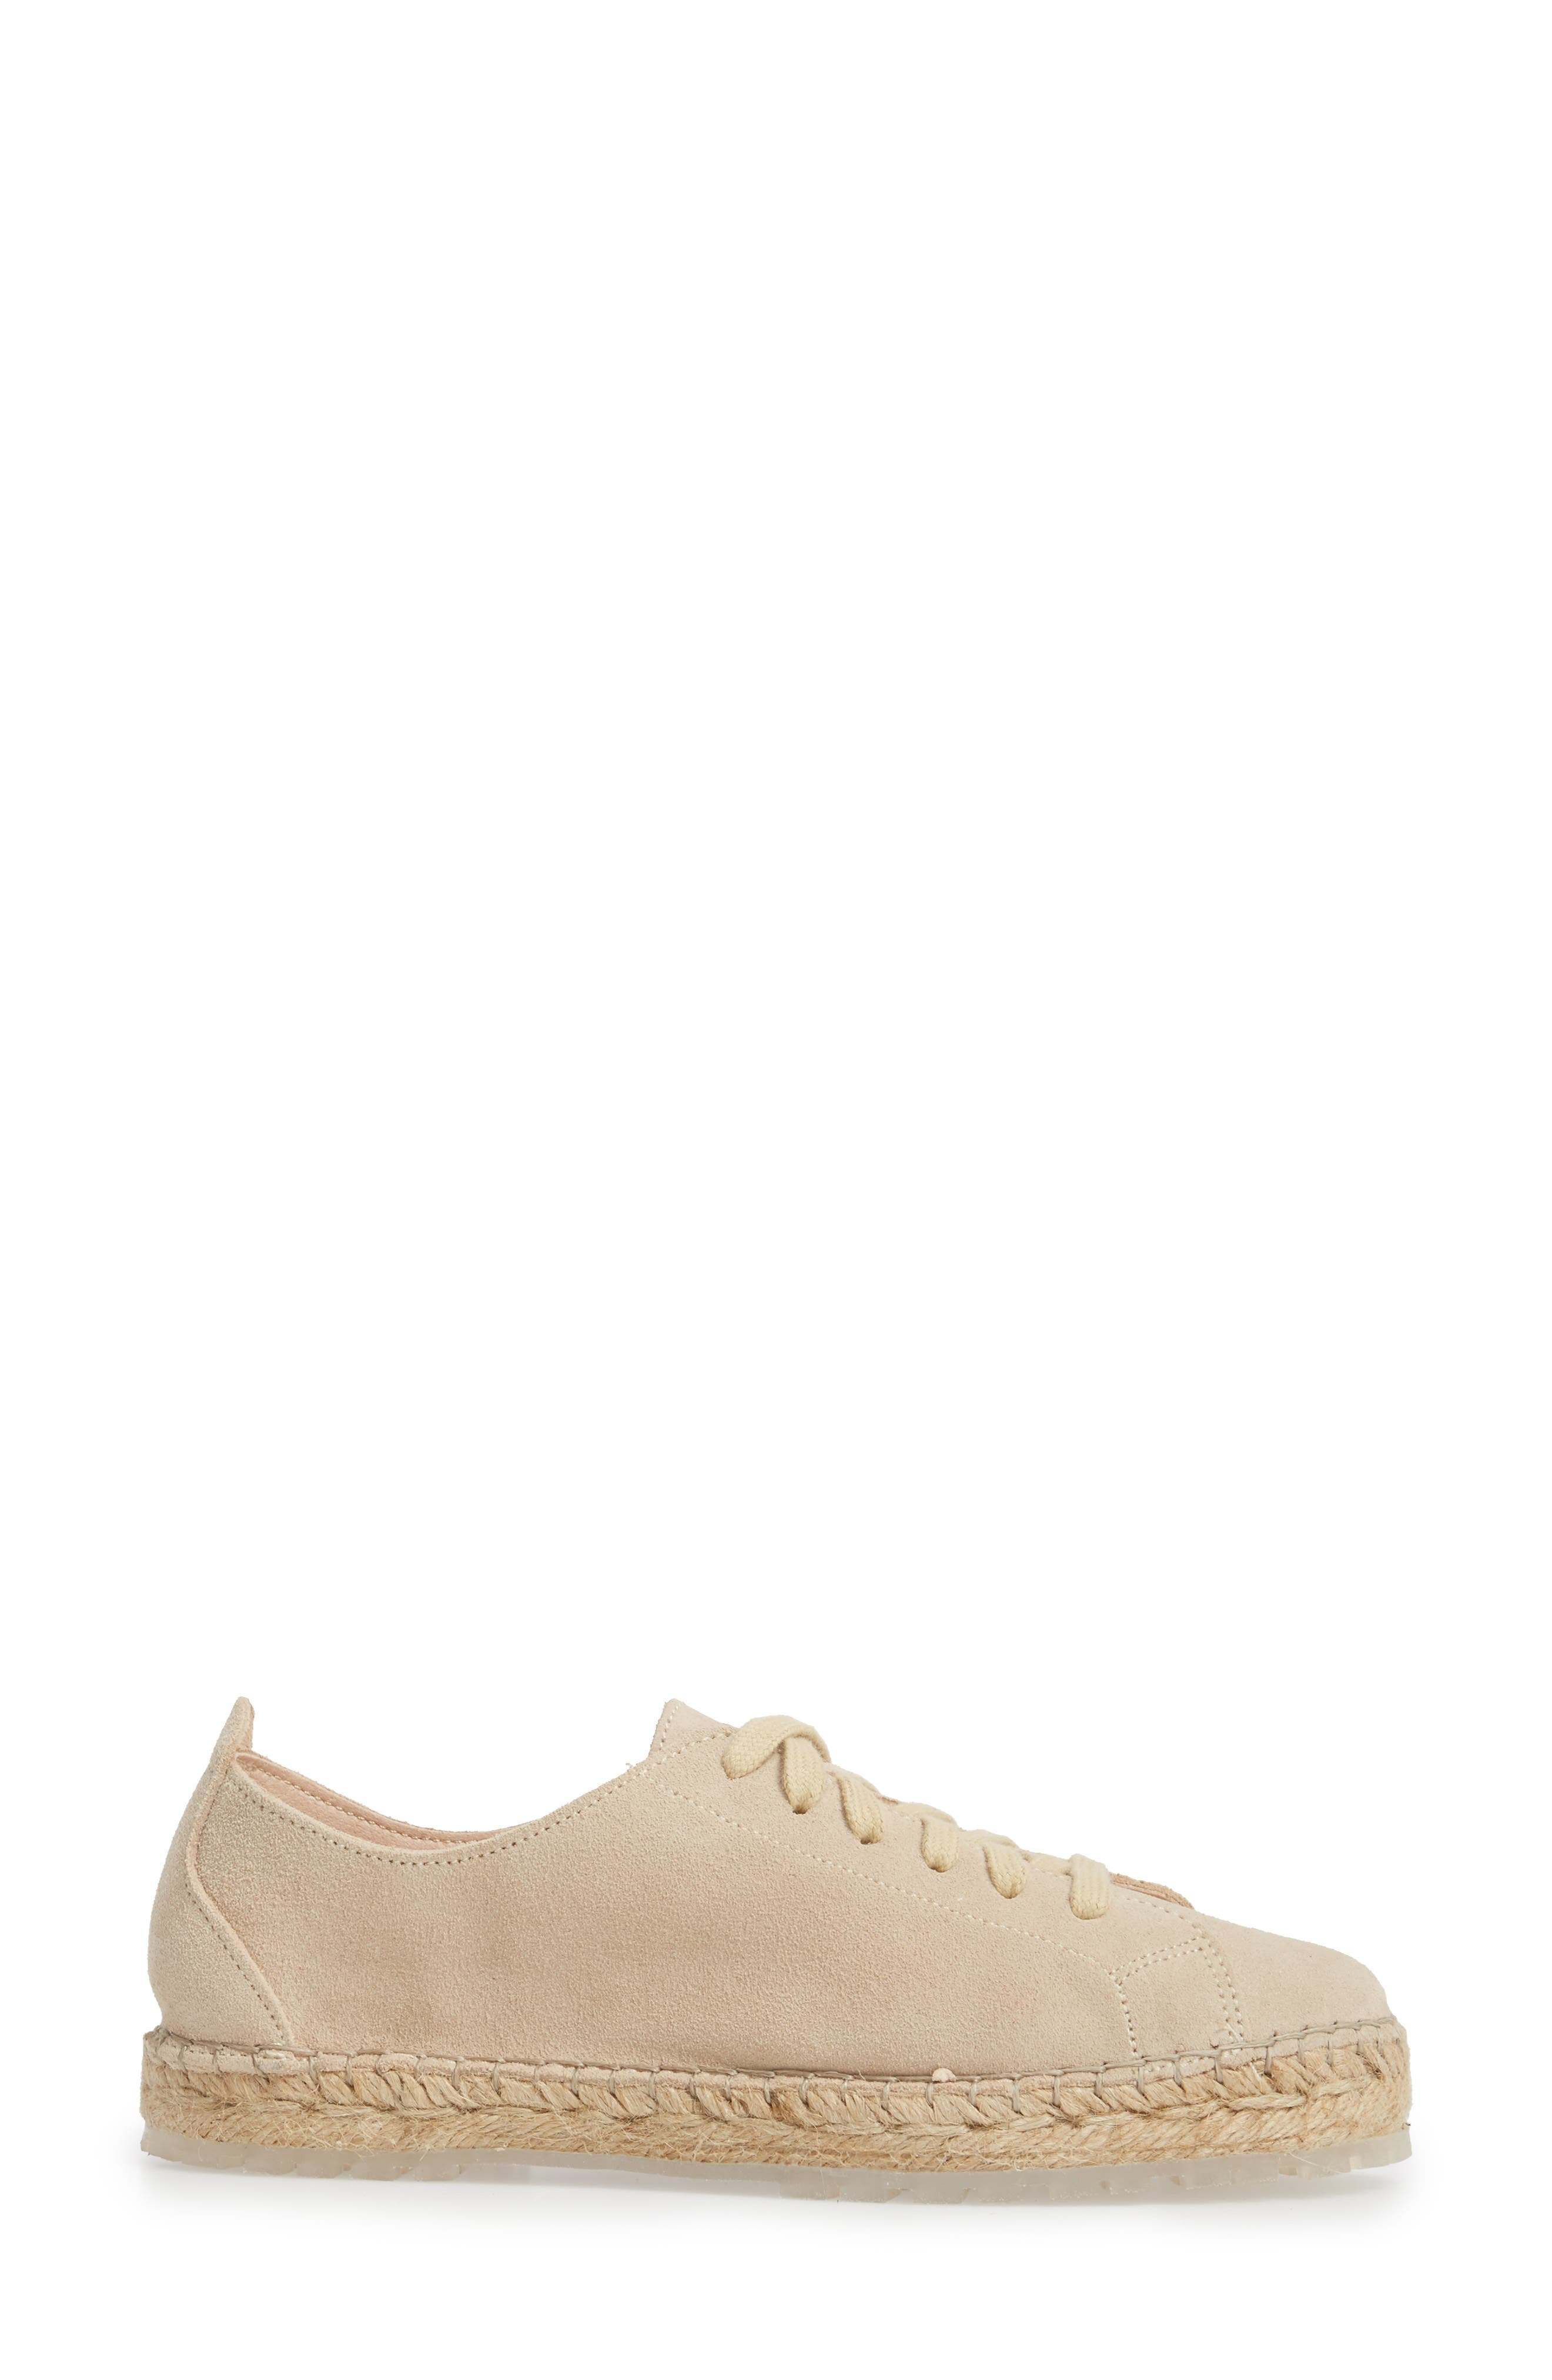 Zane Espadrille Sneaker,                             Alternate thumbnail 3, color,                             Taupe Suede